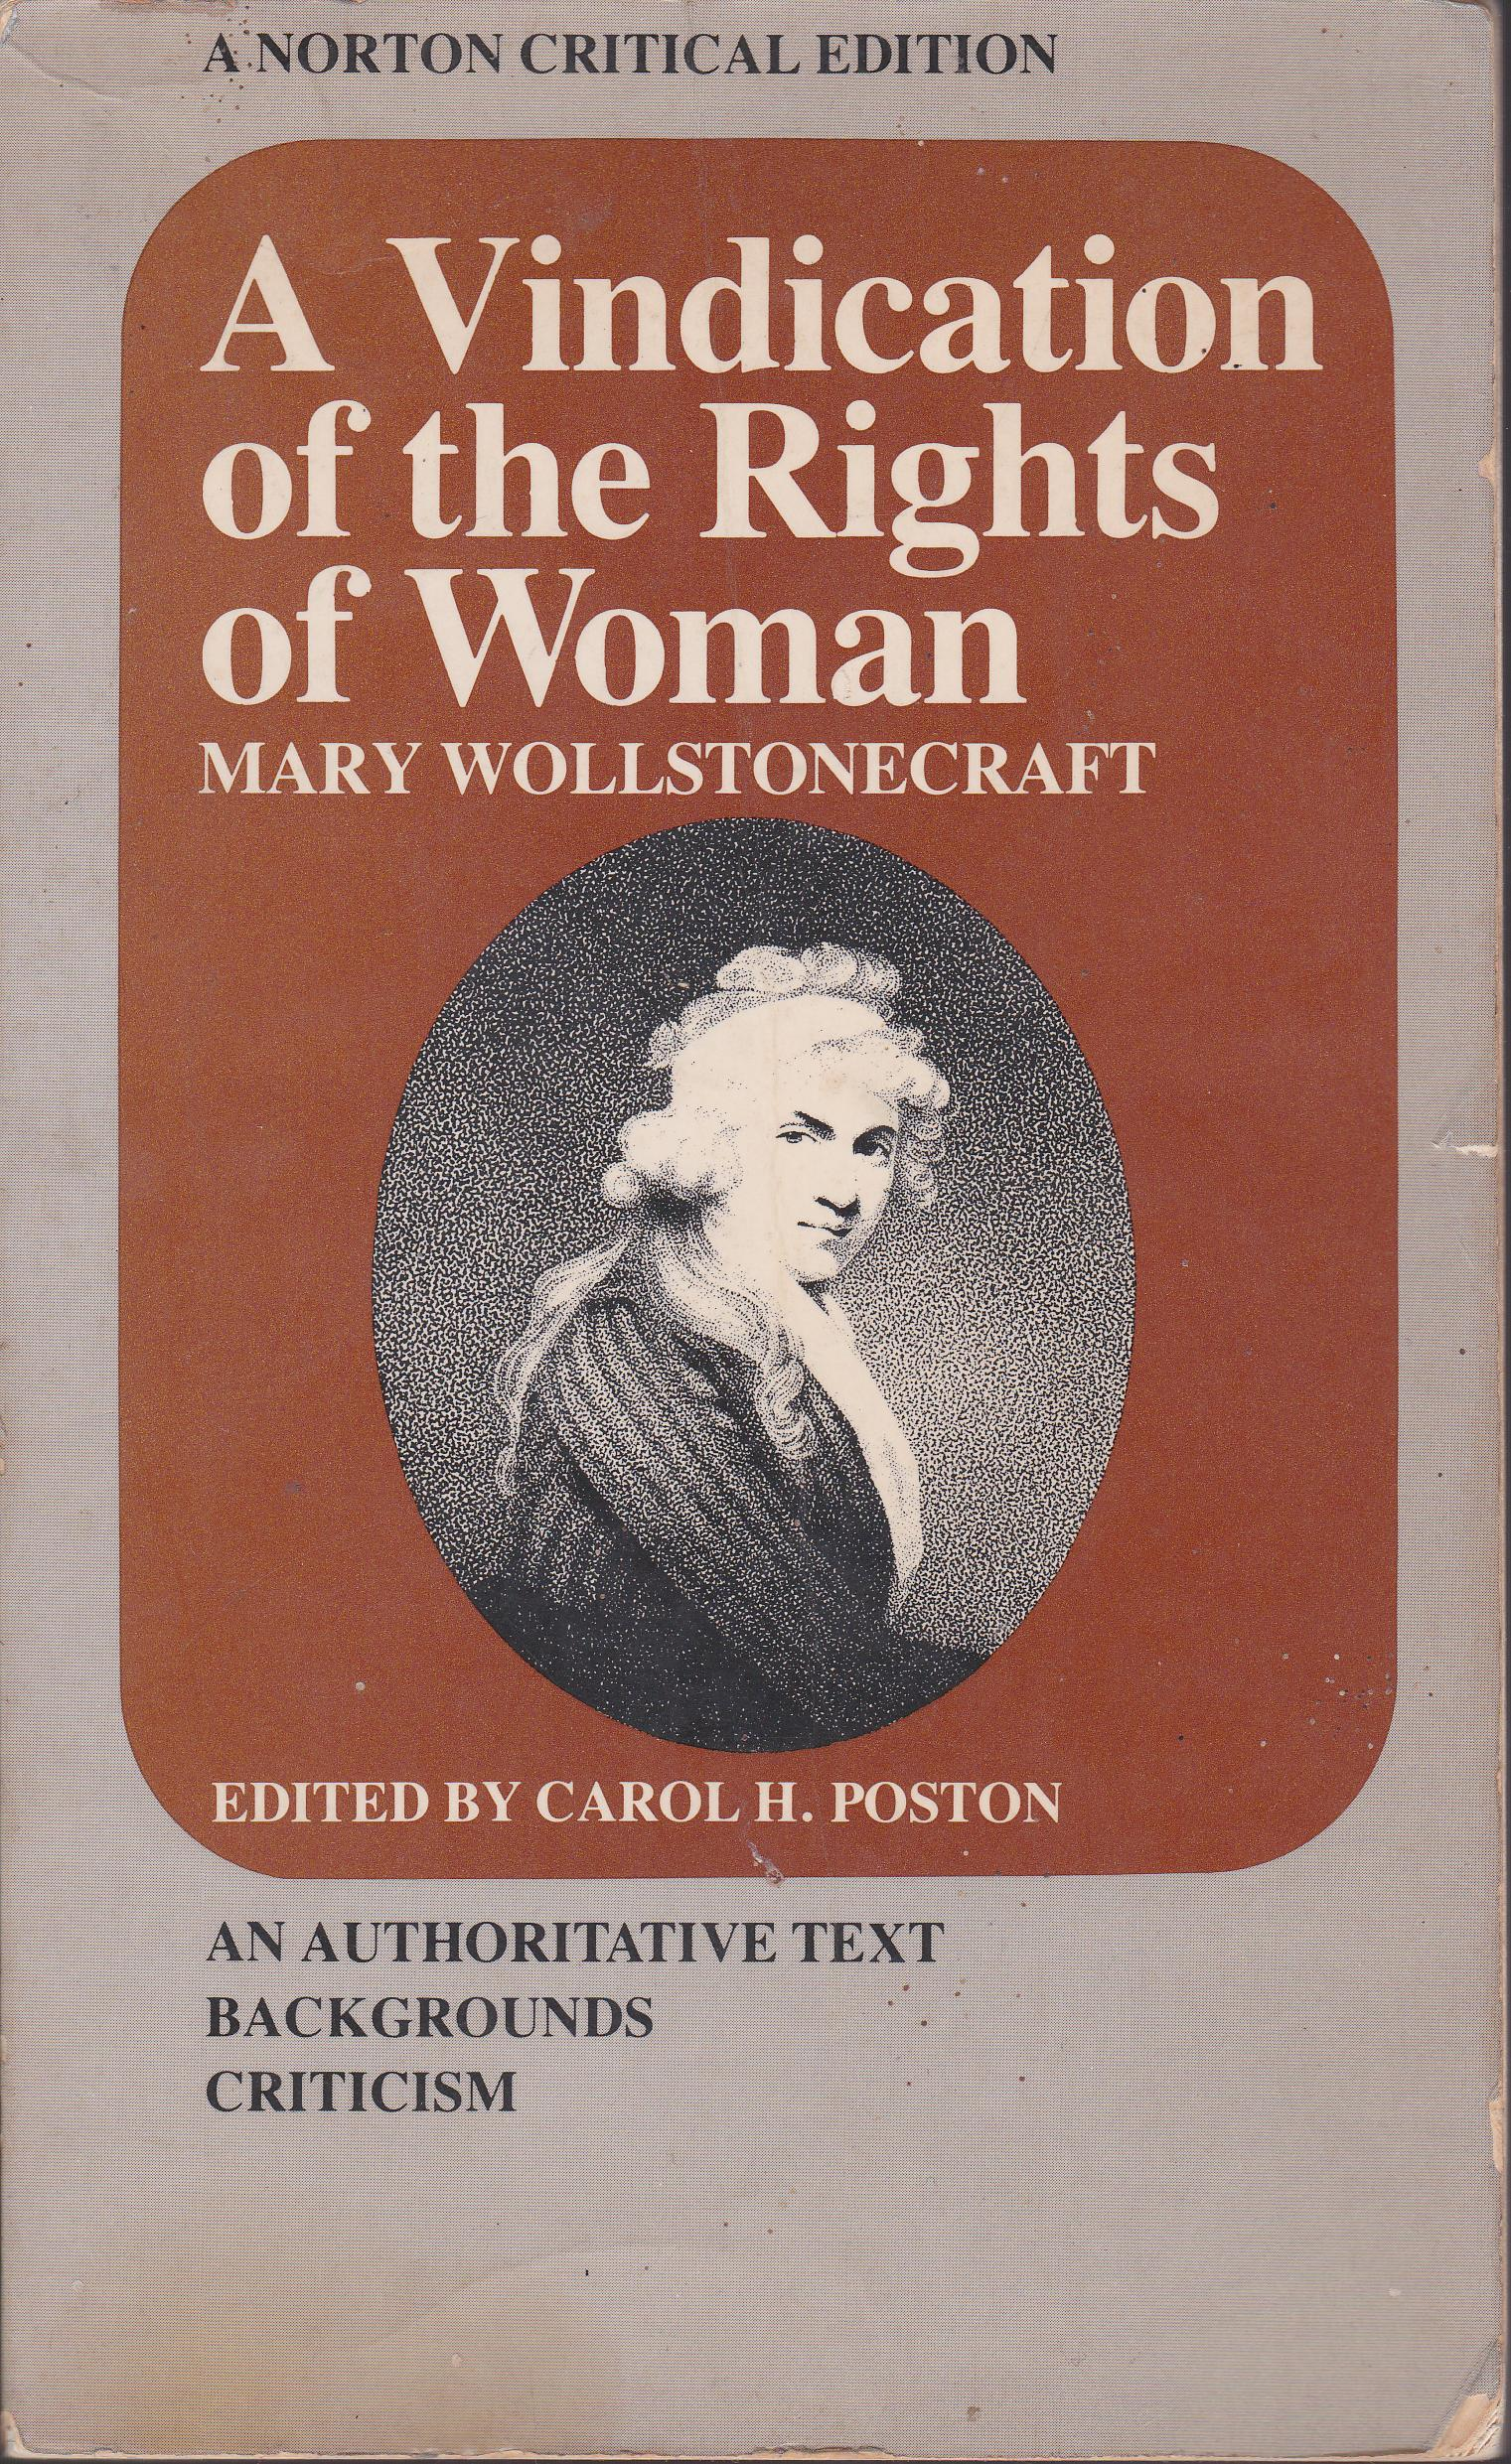 A Vindication of the Rights of Woman: An Authoritative Text, Backgrounds, Criticism